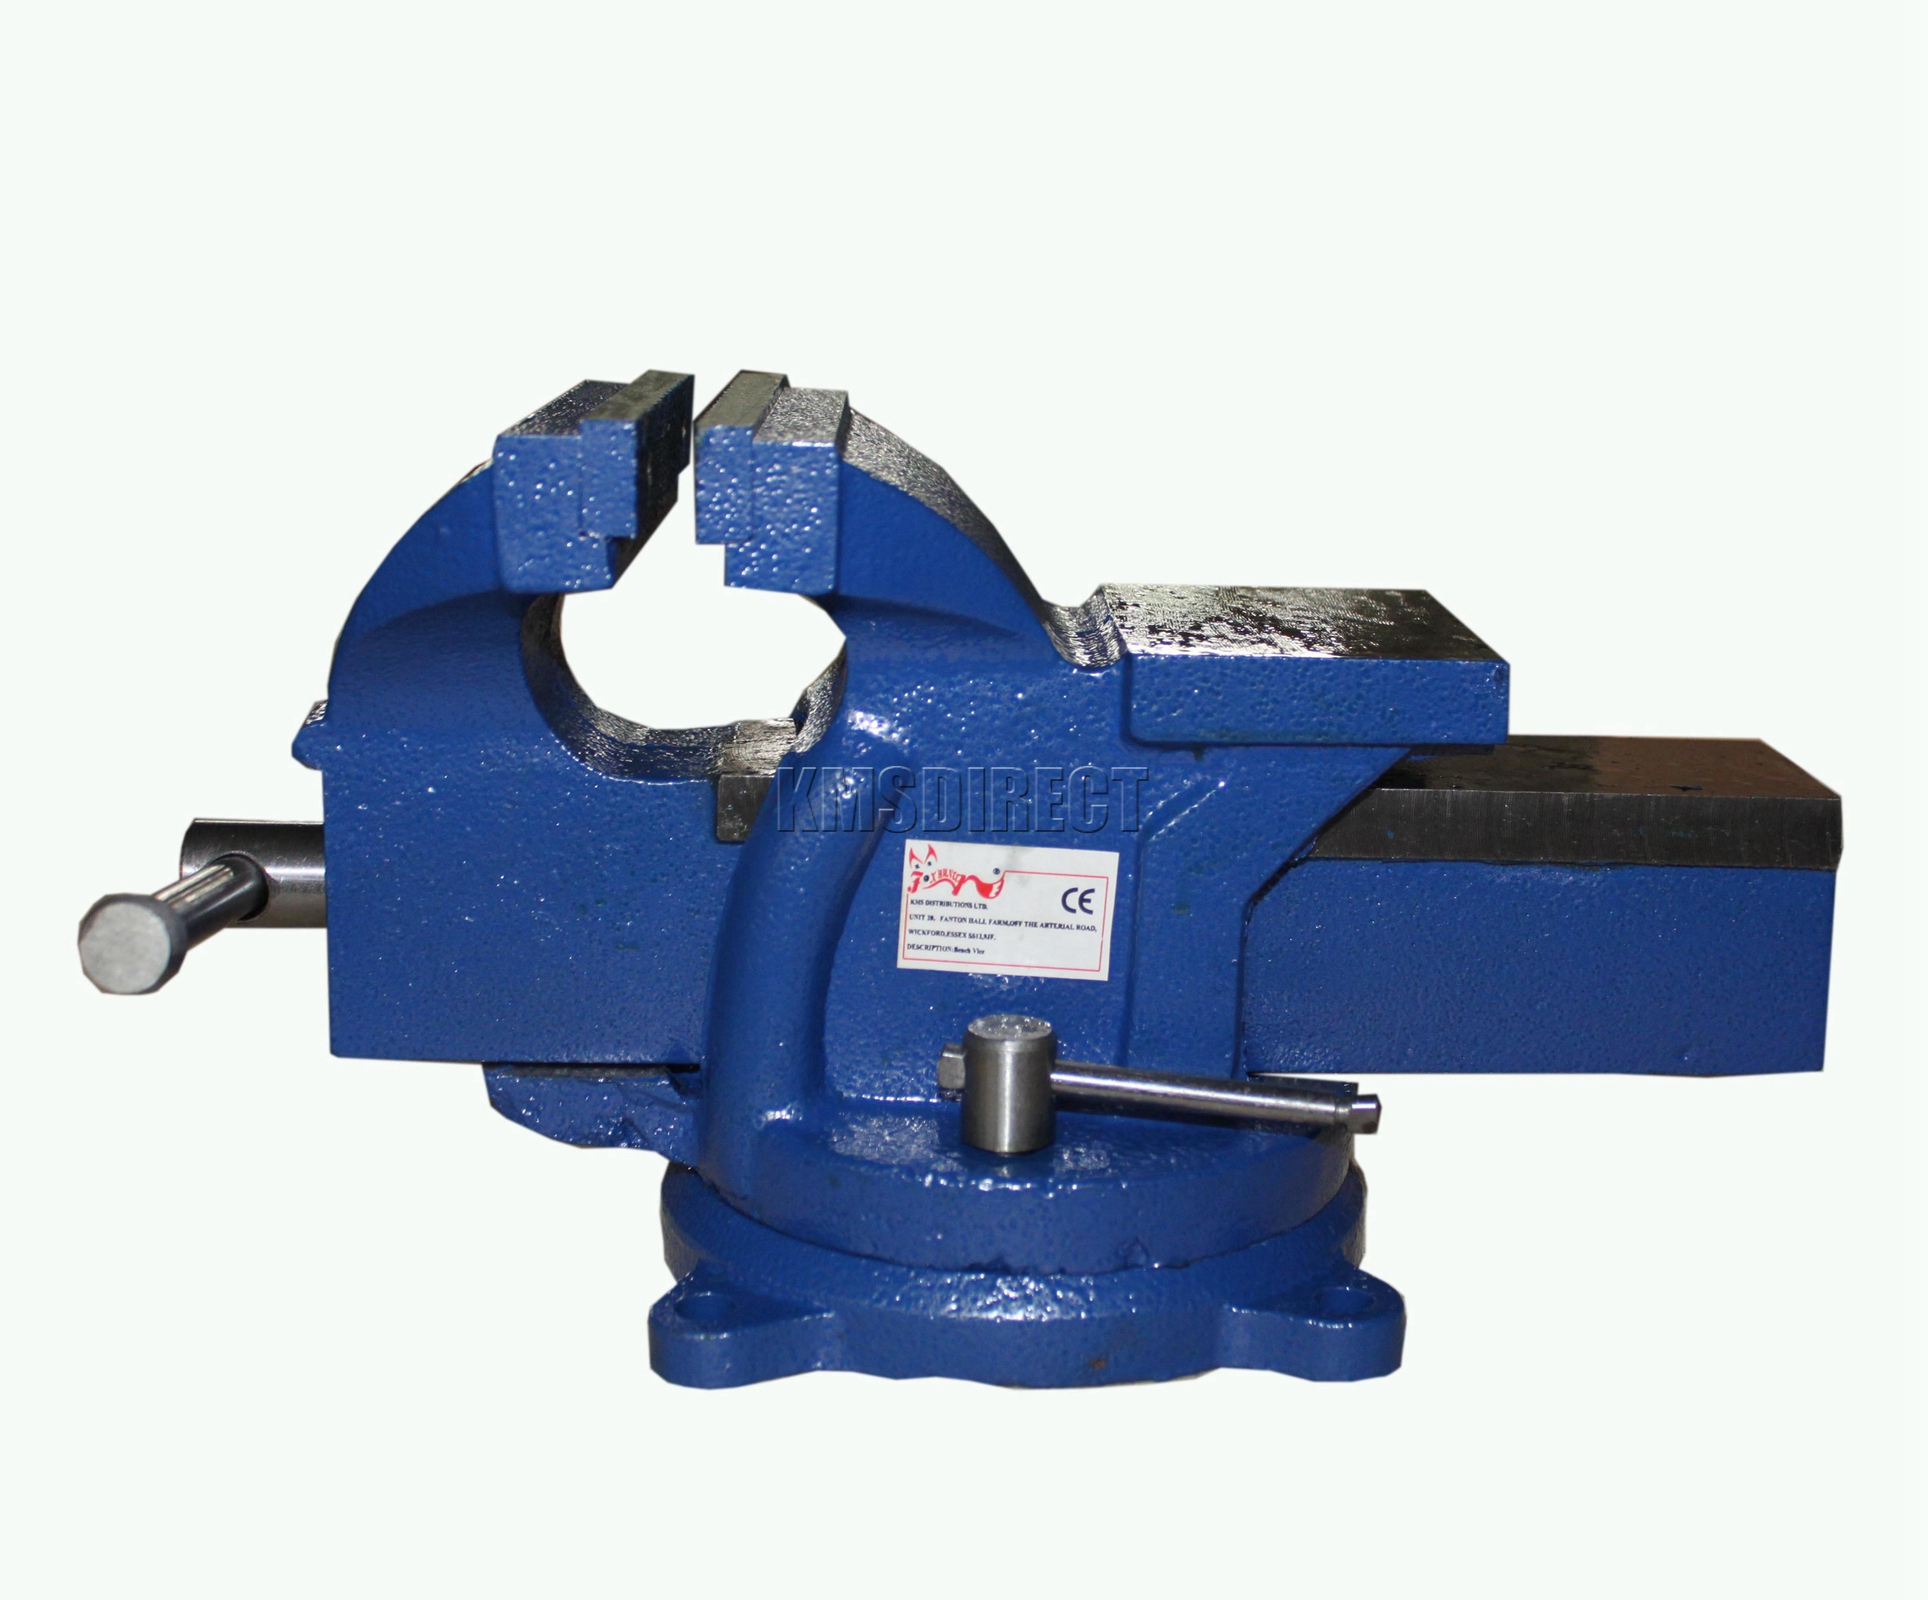 Foxhunter Swivel Base Bench Vice Vise Jaw Clamp For